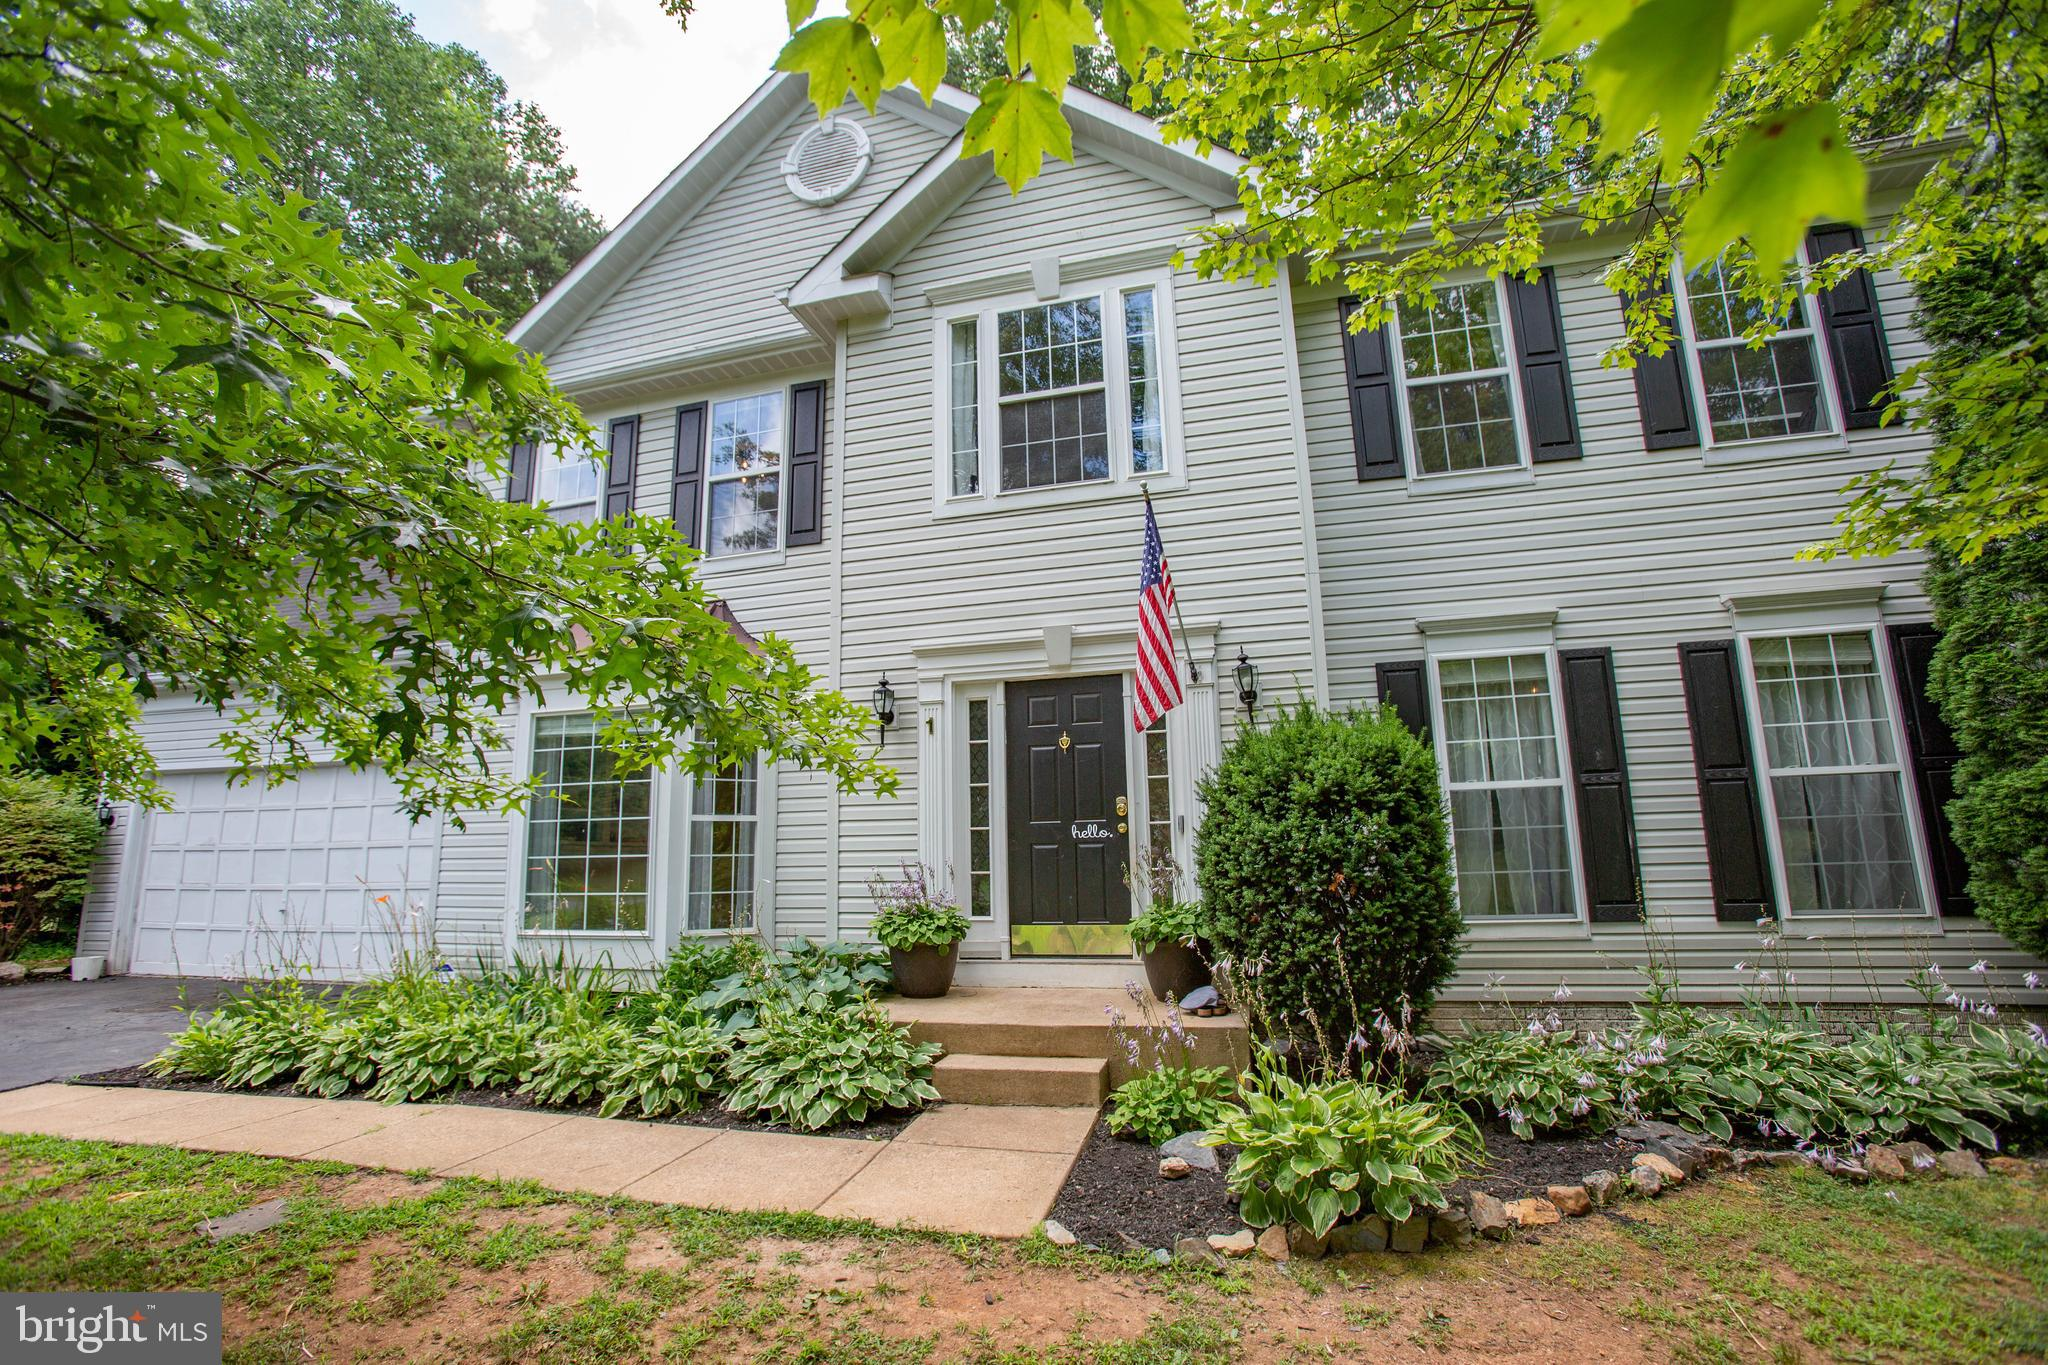 Welcome to 1 Longfellow Court in the Shelton's Run neighborhood of Stafford.  This truly gracious home is the one you have been waiting for.  With a hard-to-find 5 bedroom/ 3.5 bath open concept layout, updated kitchen, and a great outdoor area,  this house has something for everyone.  It's a perfect blend of a traditional center hall Colonial and more modern open- concept living.  Step into the large entry foyer with neutral paint and beautiful wainscoting details.  The formal living room/flex space is to the right of the entry and features crown molding.   Across the foyer you will find the formal dining room with custom built ins and doorway to the updated kitchen.  If  you enjoy entertaining,  you will love the flow of this space.  Whip up a meal for friends while still being a part of the conversation.  An oversized  granite island offers seating for 4, and the bump out sunroom area easily accommodates a table for 8.  The family room  has a cozy gas fireplace and plenty of space for your furniture.  Your entertaining won't be limited to indoors,  with a screened porch area that provides access to your  fenced backyard.  The mature trees offer welcomed shade for the sunny Virginia summers while also offering privacy from your neighbors.  Imagine evenings catching up with friends around your fire pit, roasting marshmallows, sharing stories,  or simply enjoying the quiet of your 1.3 acres.  Head back inside and  up to the bedroom level to find four generously-sized secondary bedrooms that share a spacious hall bath with dual sinks.    The Owners' Suite is over 300 (18.6x17) square feet in size and has a walk-in closet and en suite with dual sinks.   The fourth bedroom has been updated to make a  suite with bedroom and  separate sitting area/ office behind chic barn doors.   If the past year has forced you to integrate work or school into your home life, this room would allow for work/school space that can be closed off when the work day is done.   If you need even